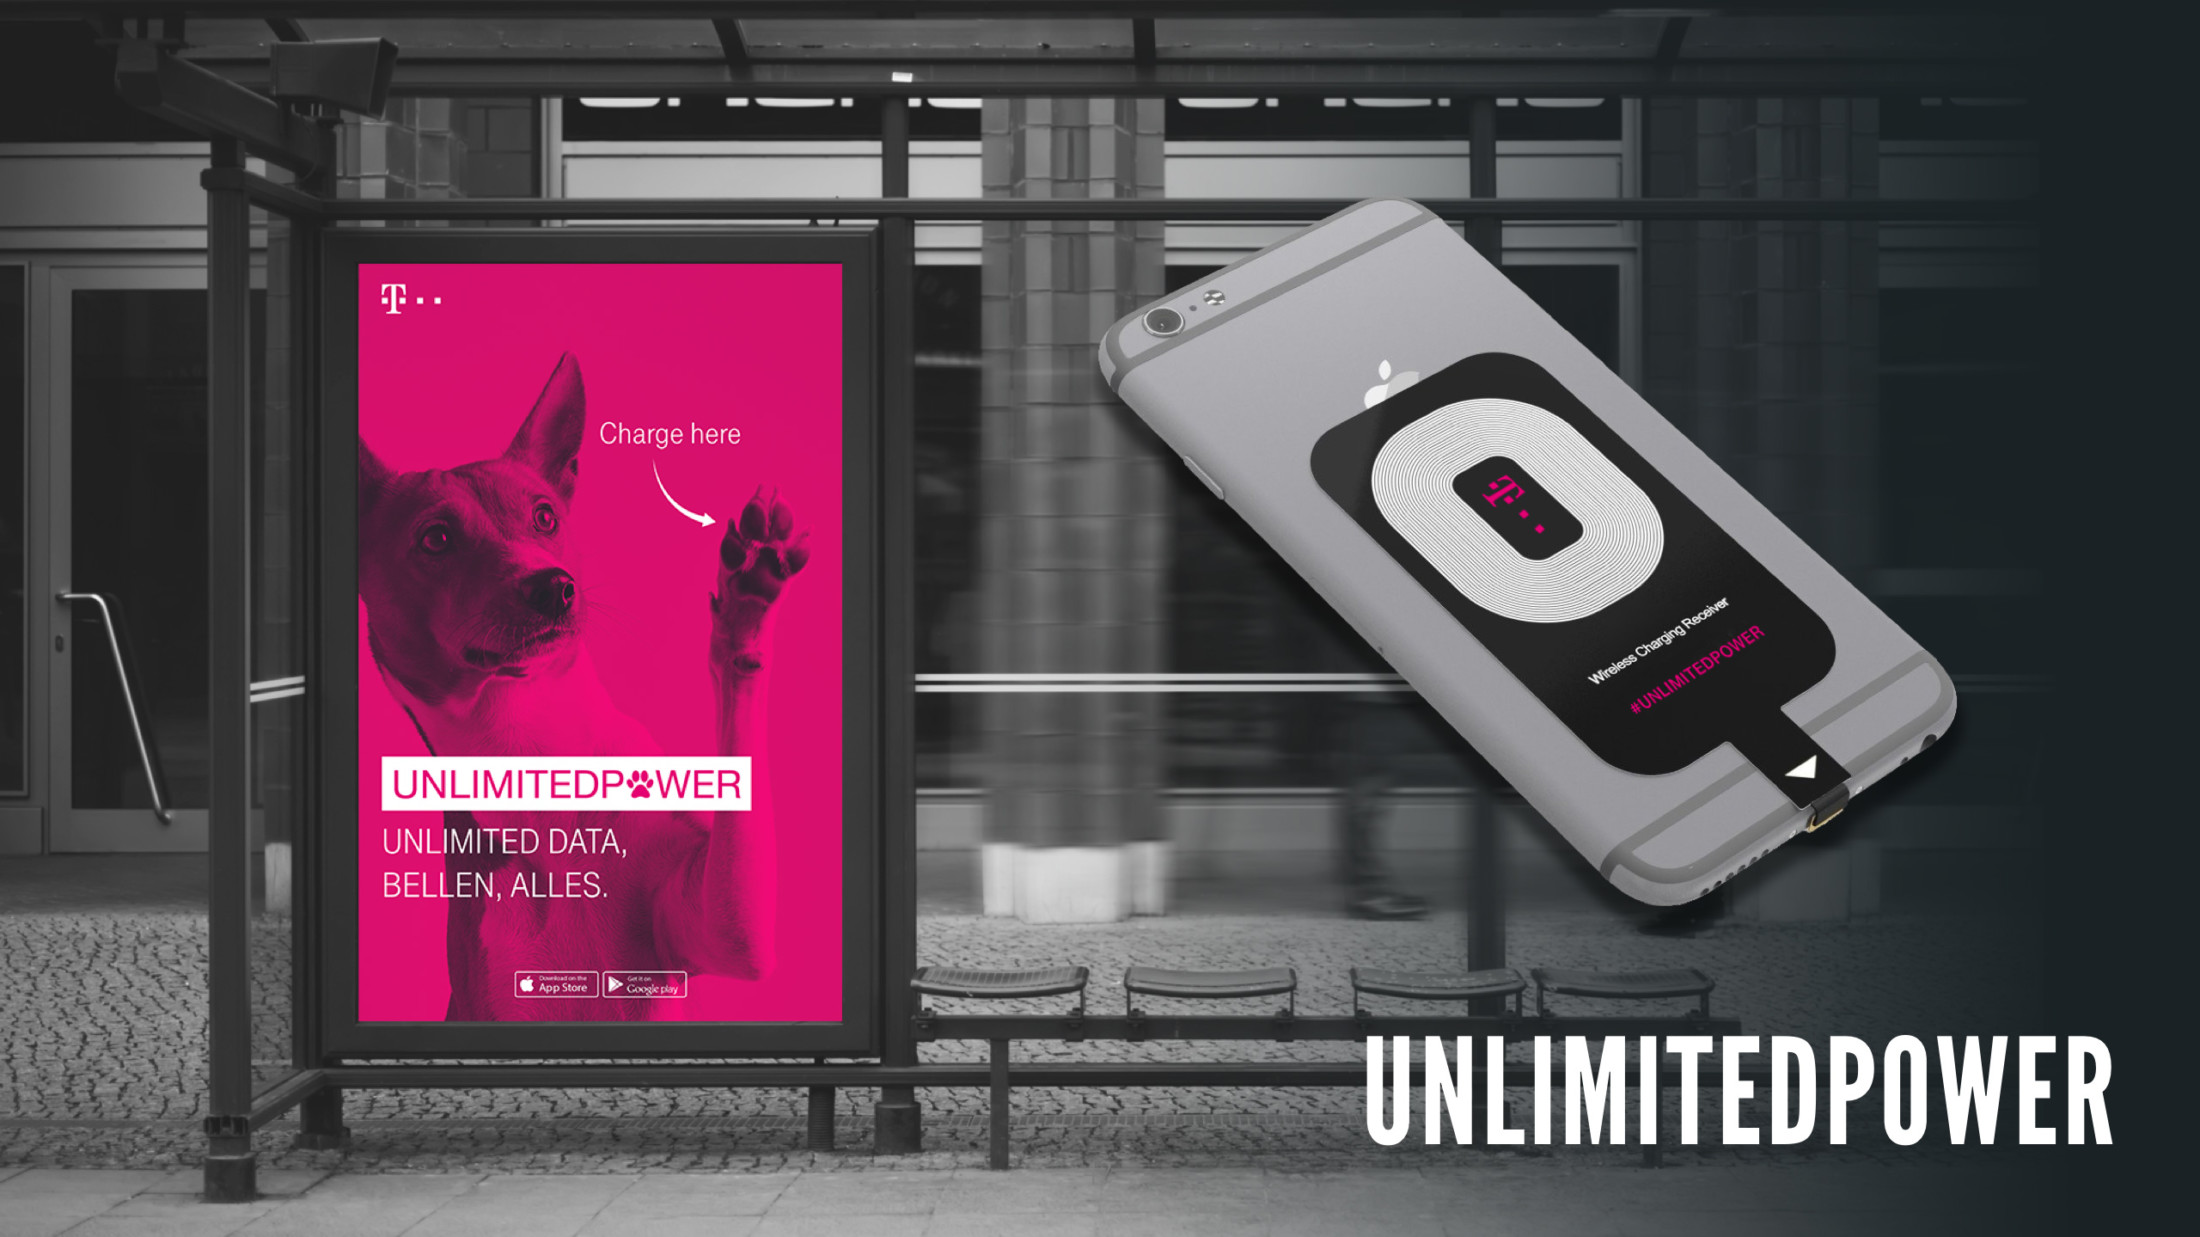 T-Mobile – Unlimited power